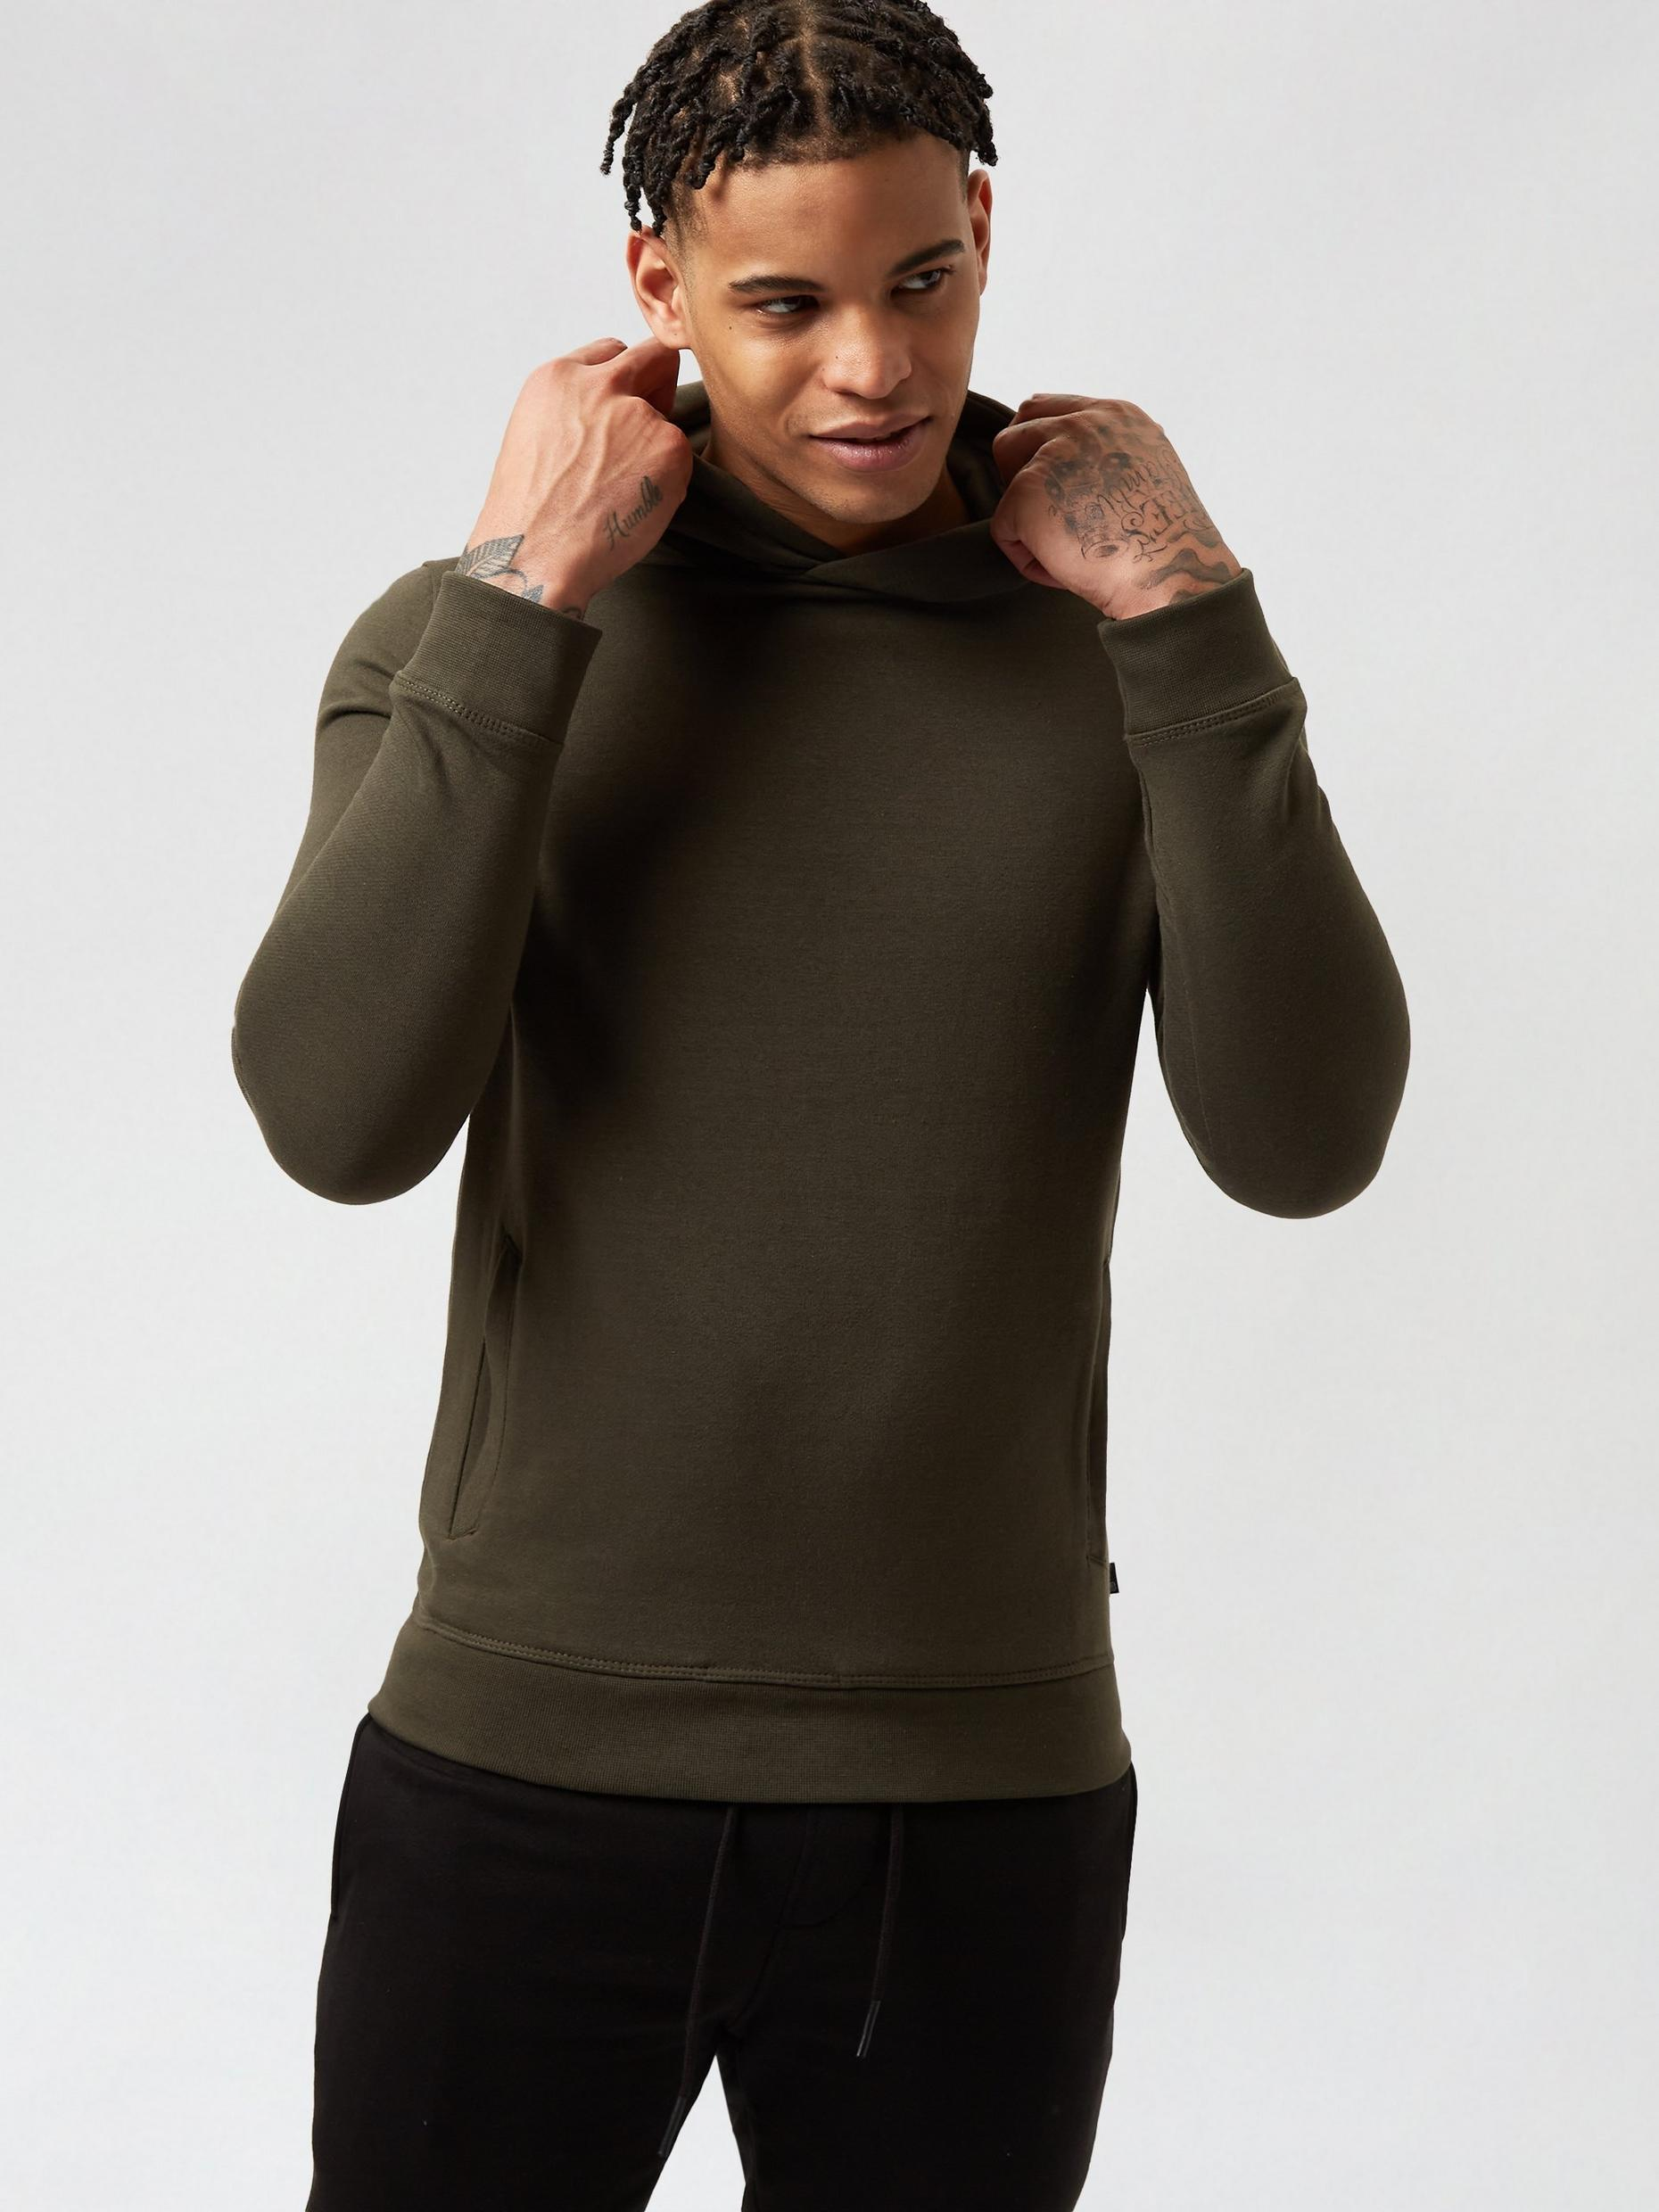 2 Pack Black and Khaki Hoodies